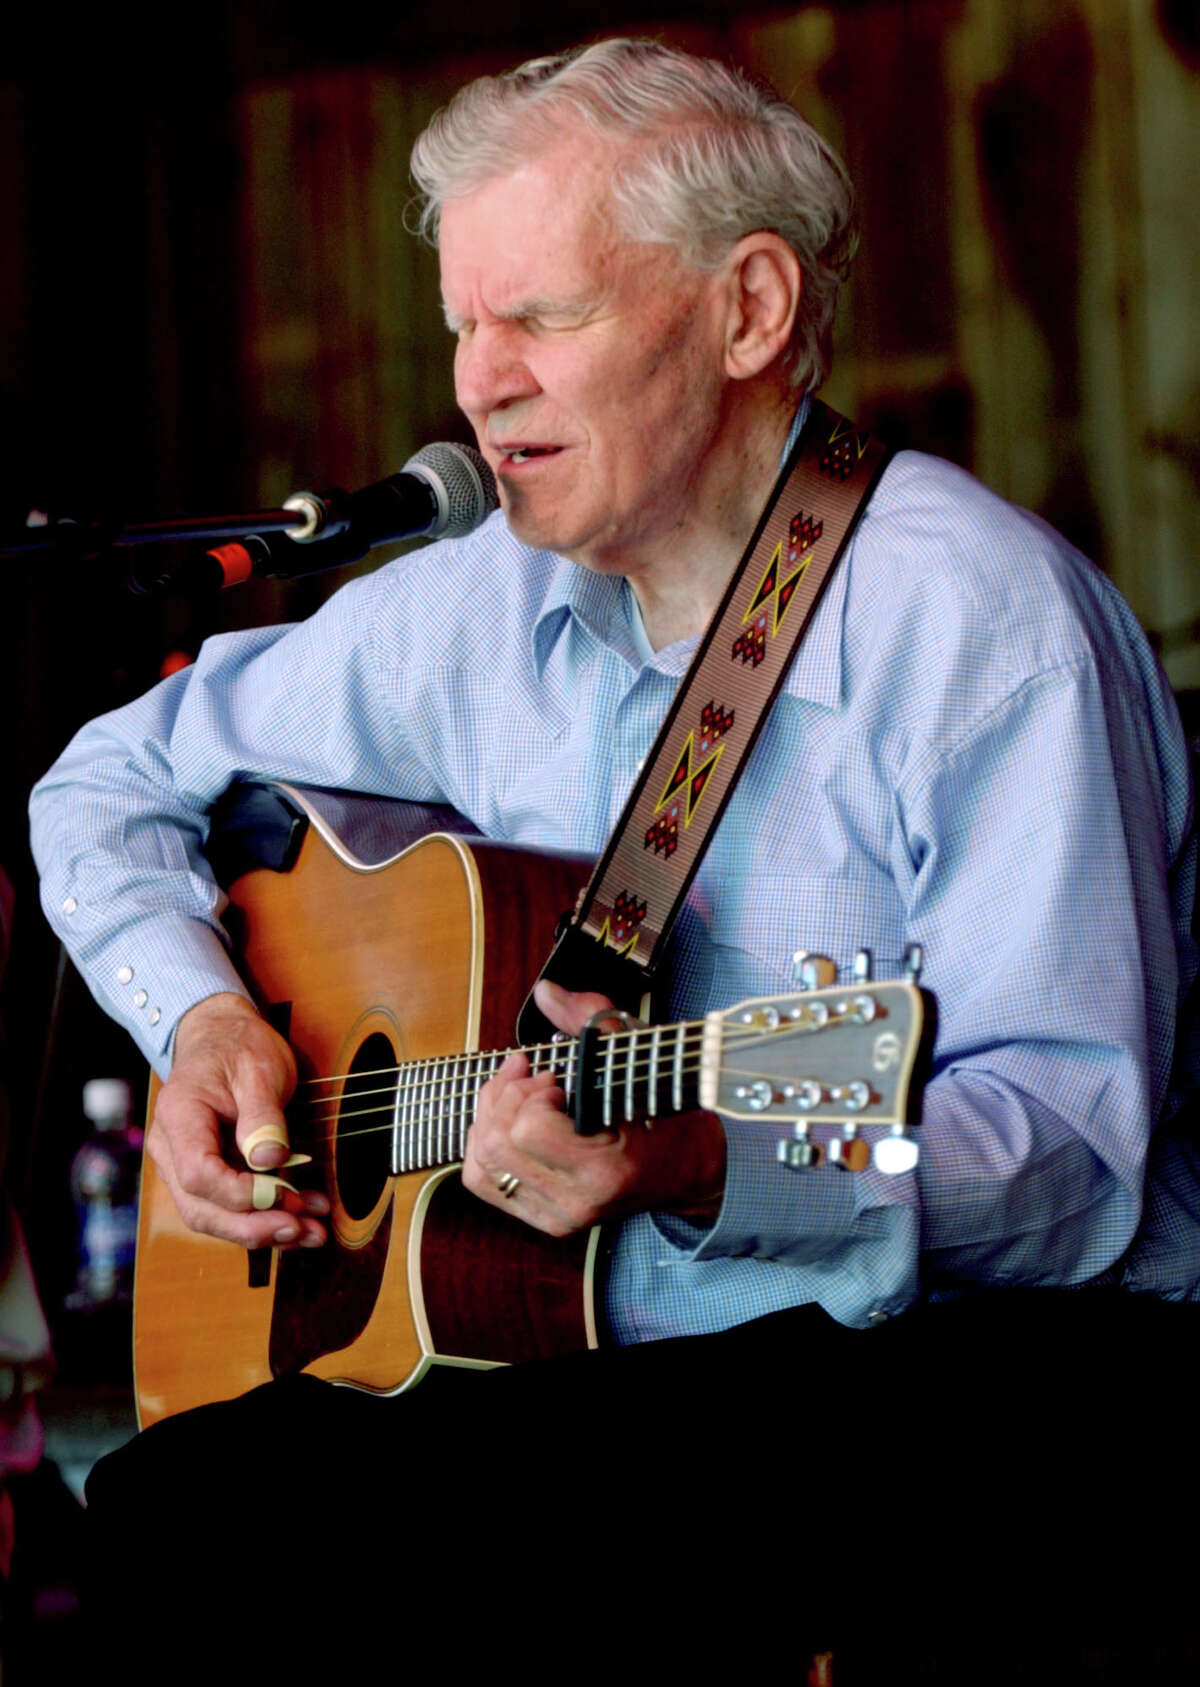 Doc Watson described his virtuoso playing as just